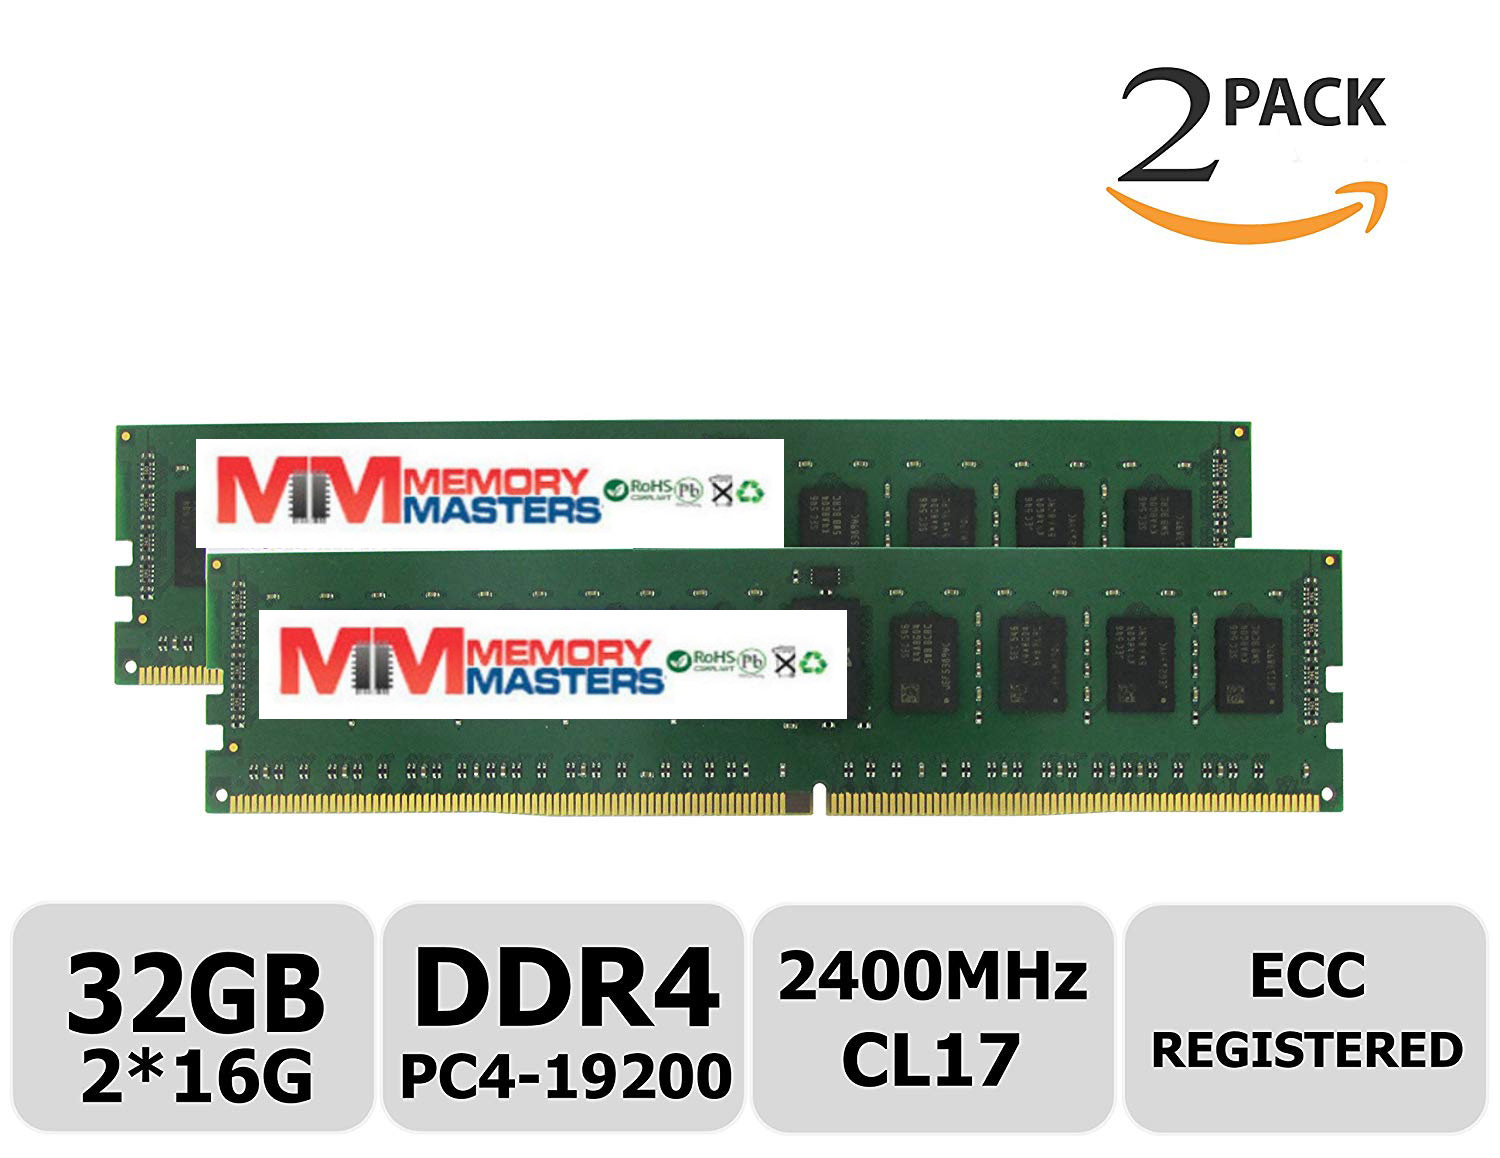 MemoryMasters Samsung IC 32GB Kit (2x16G) DDR4 2400MHz PC4